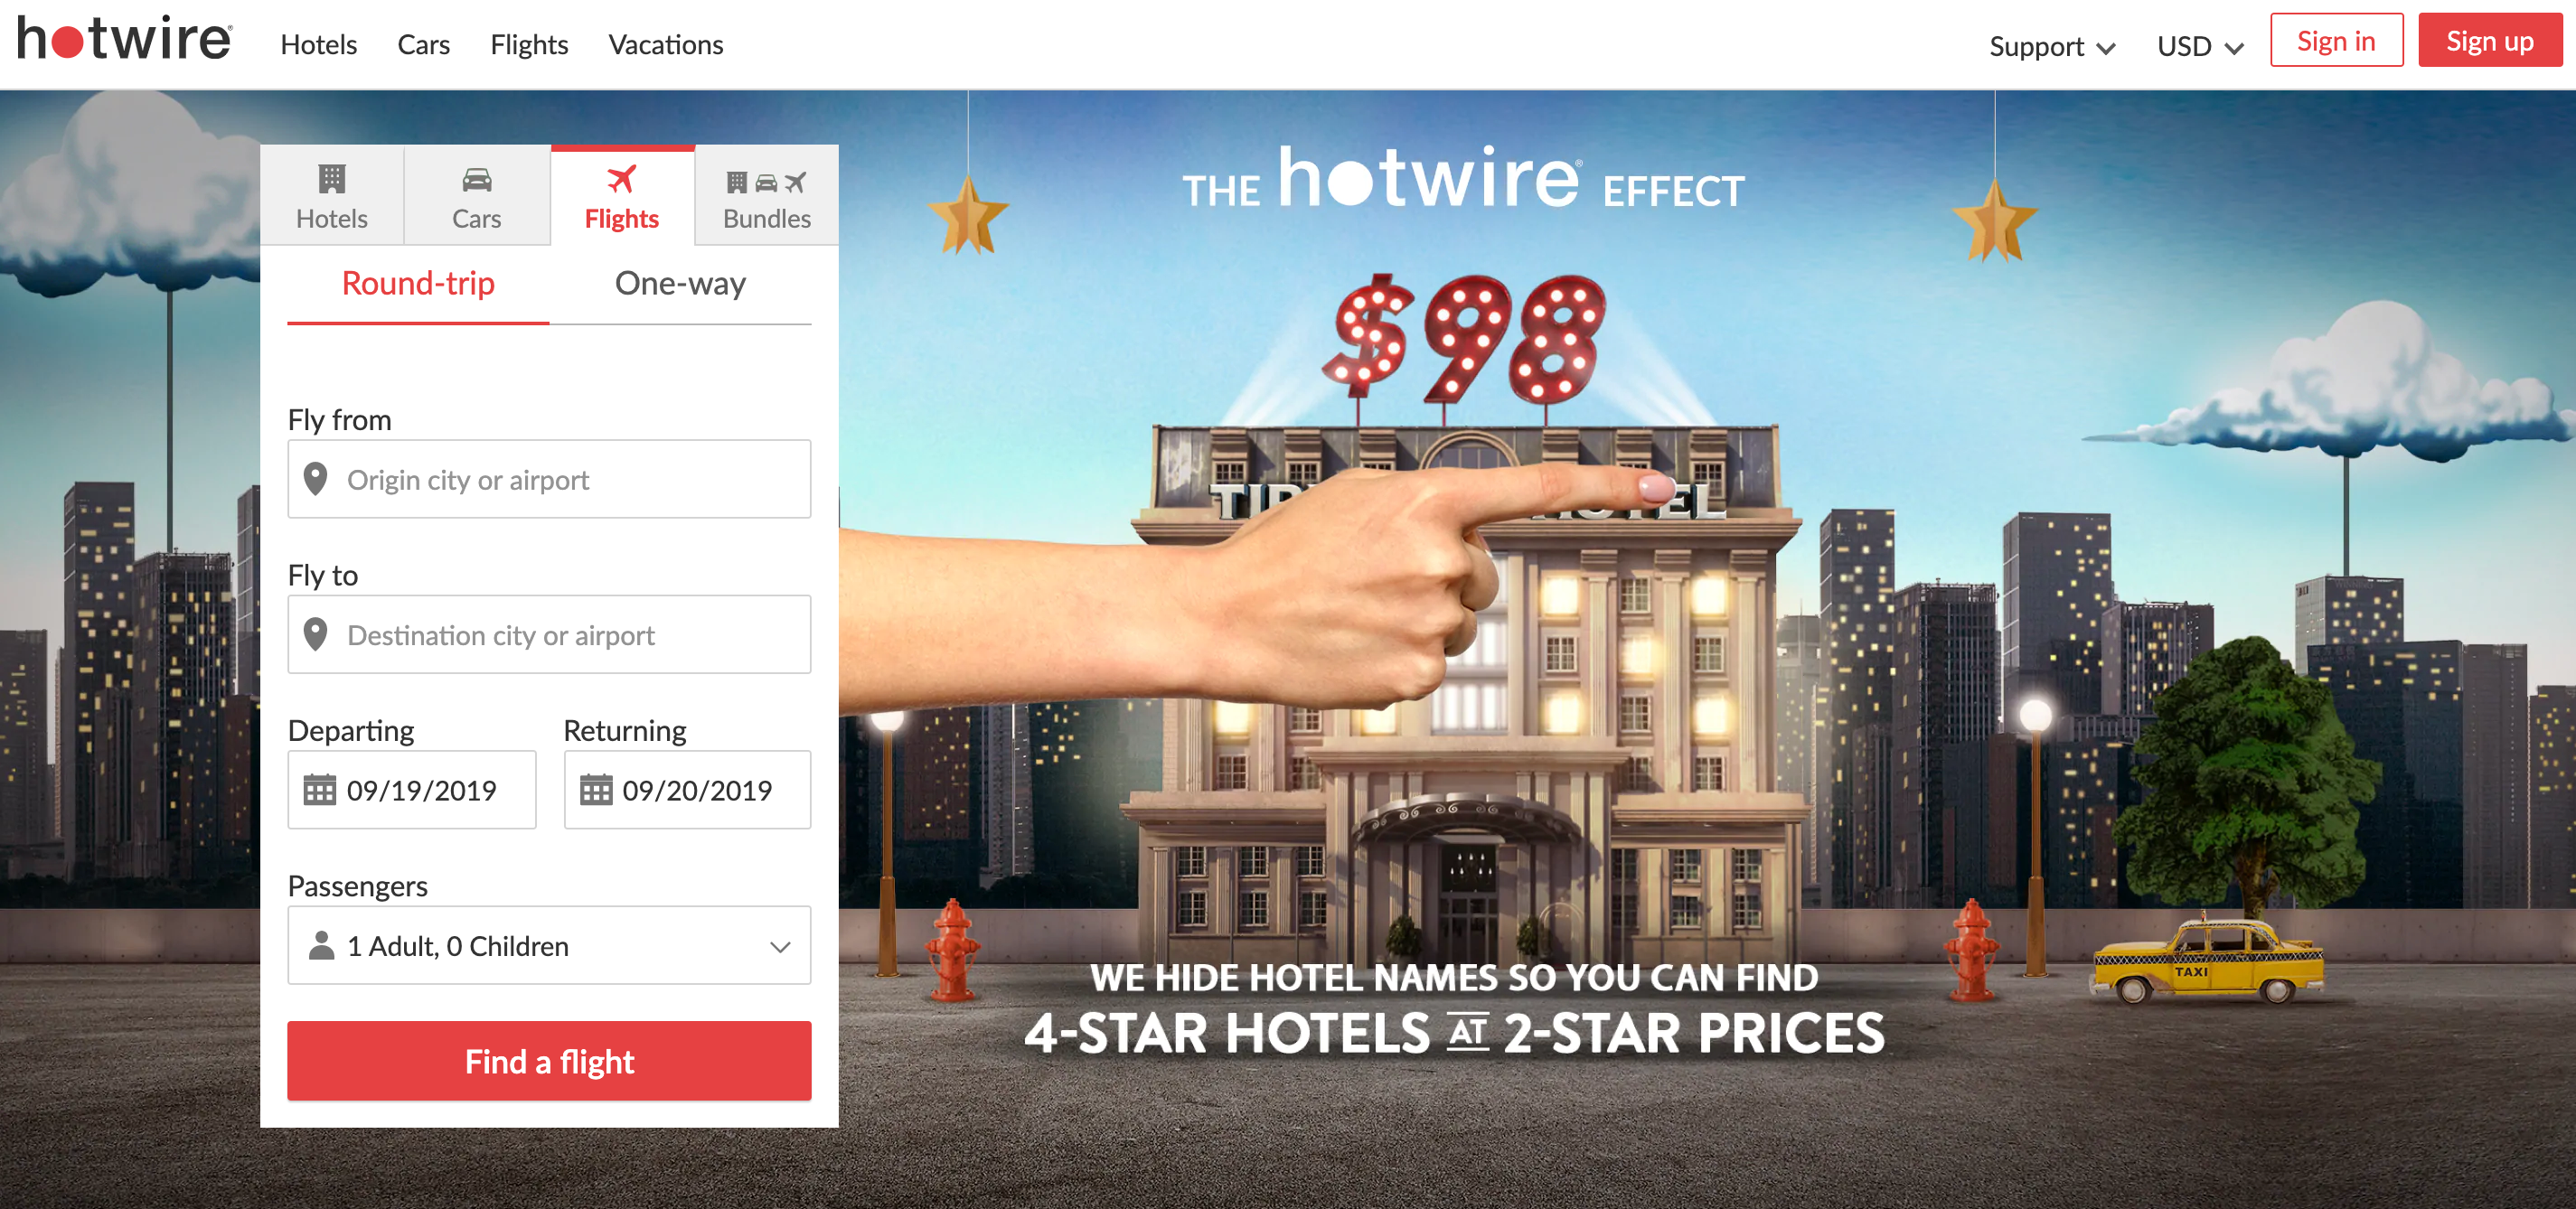 Hotwire to Find Cheap Hotels and Flights